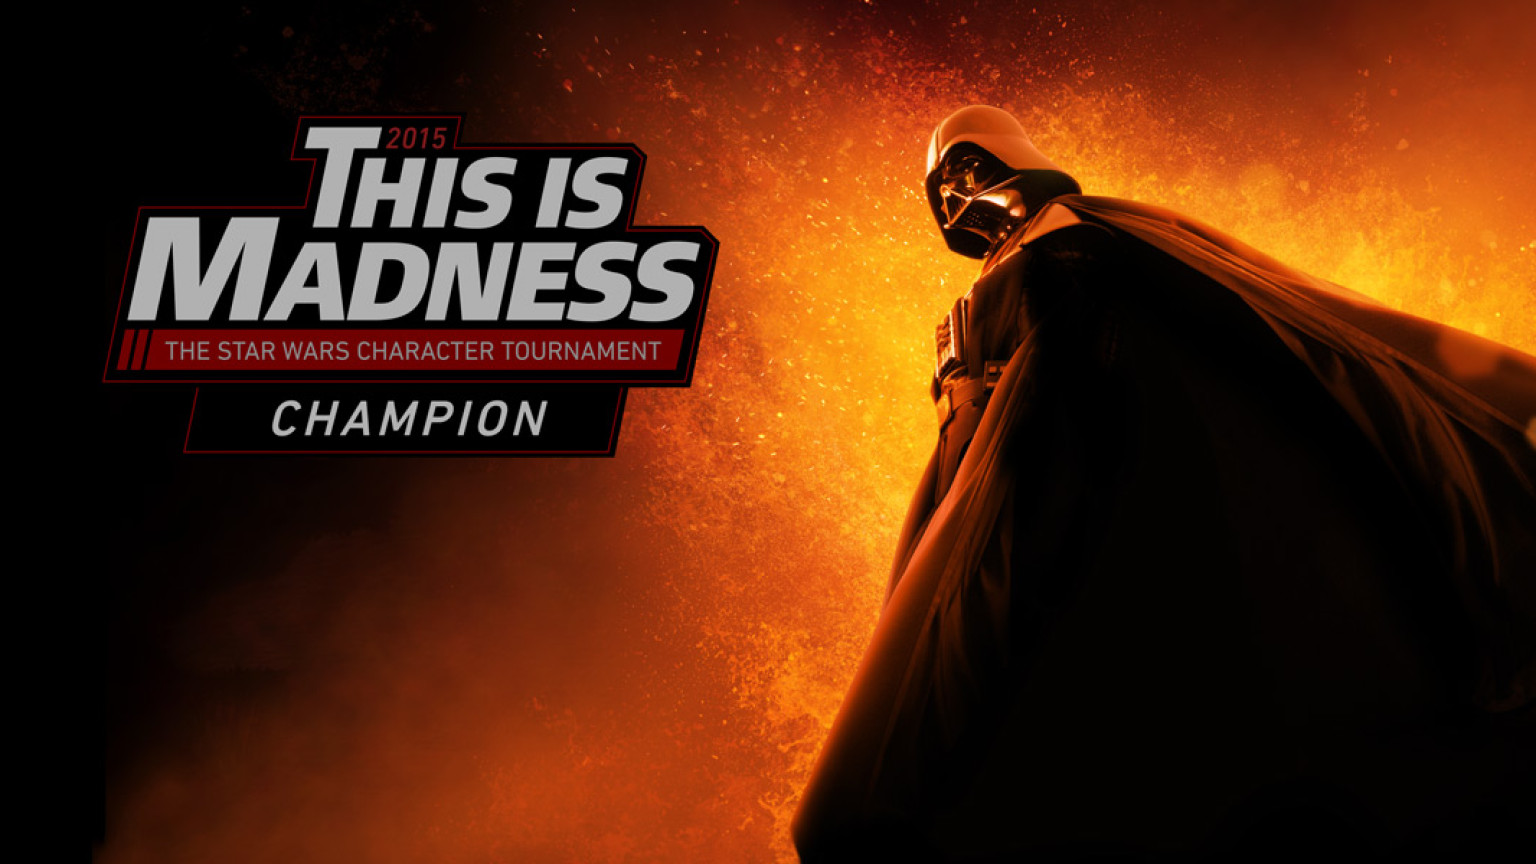 Darth Vader This Is Madness Champion